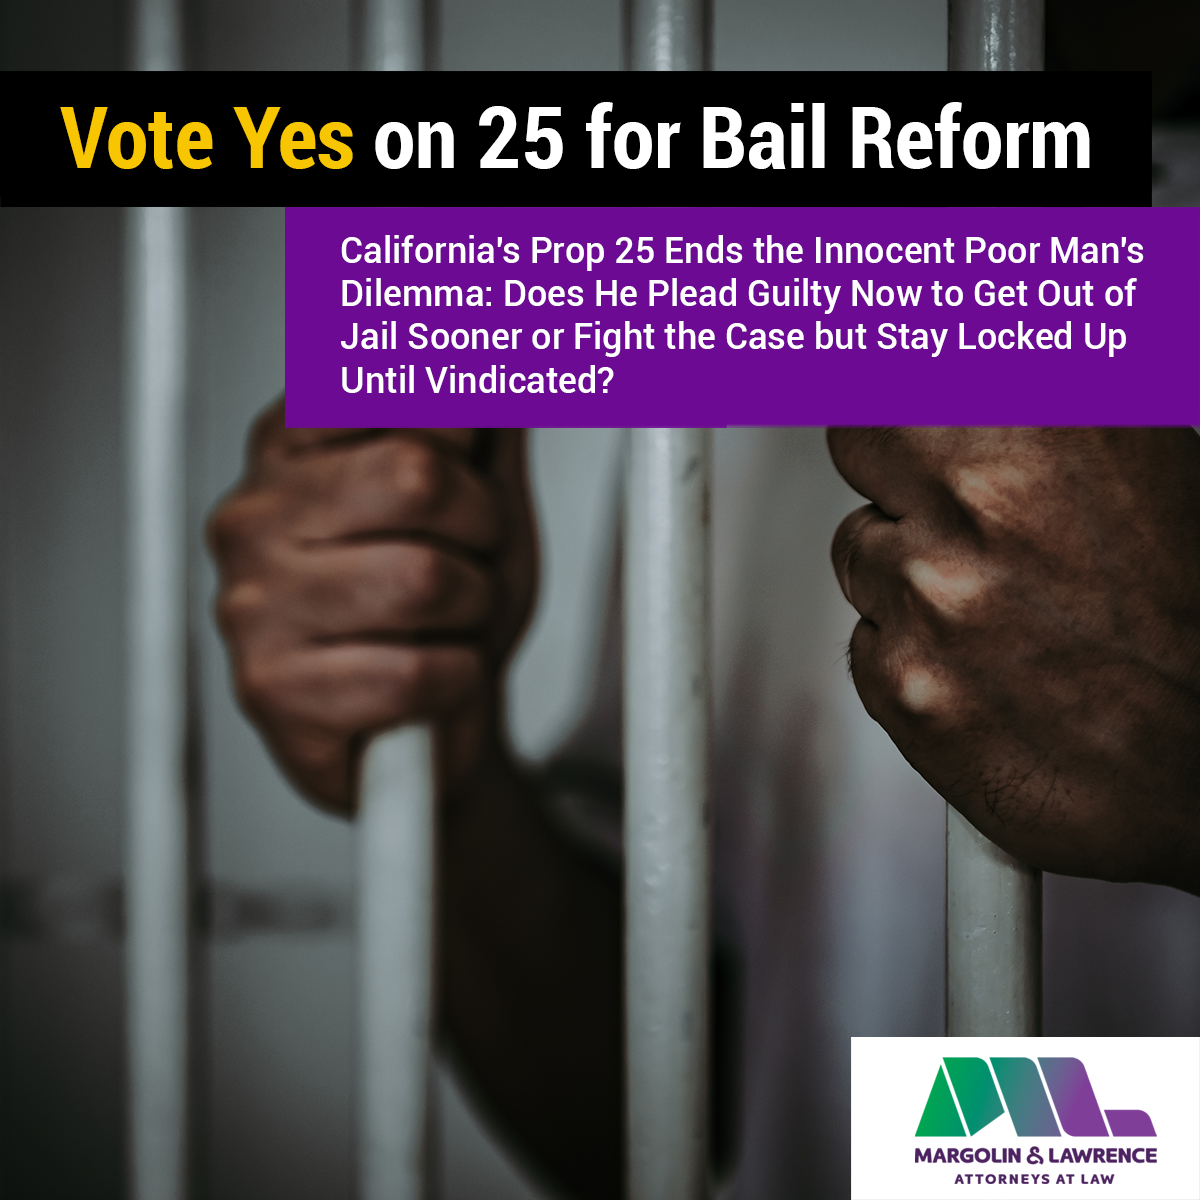 Vote yes on 25 for bail reform